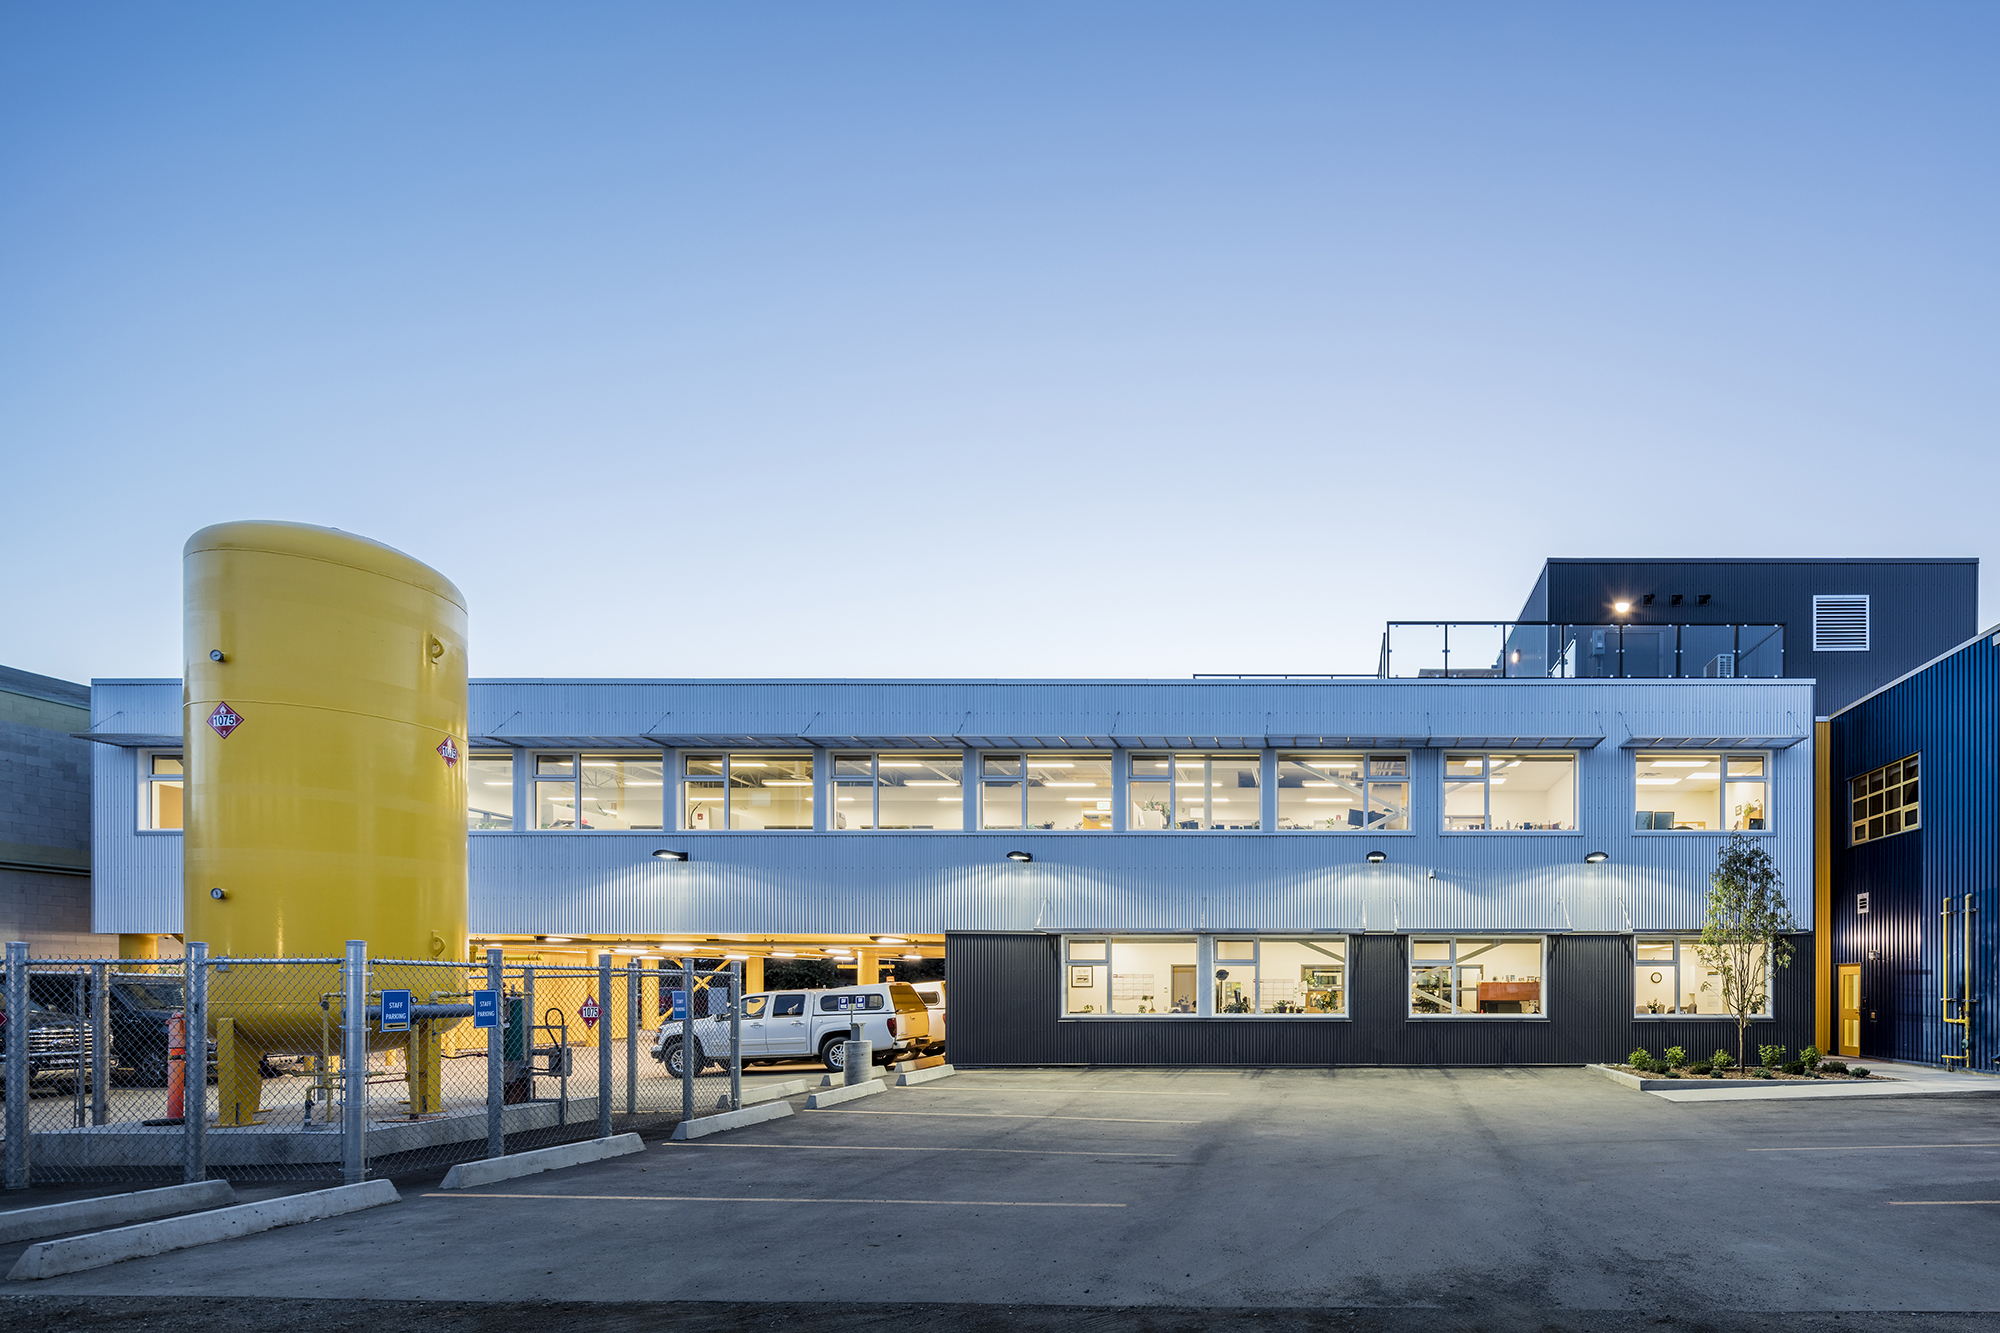 Yukon Workers' Compensation Health and Safety Board / Kobayashi+Zedda Architects